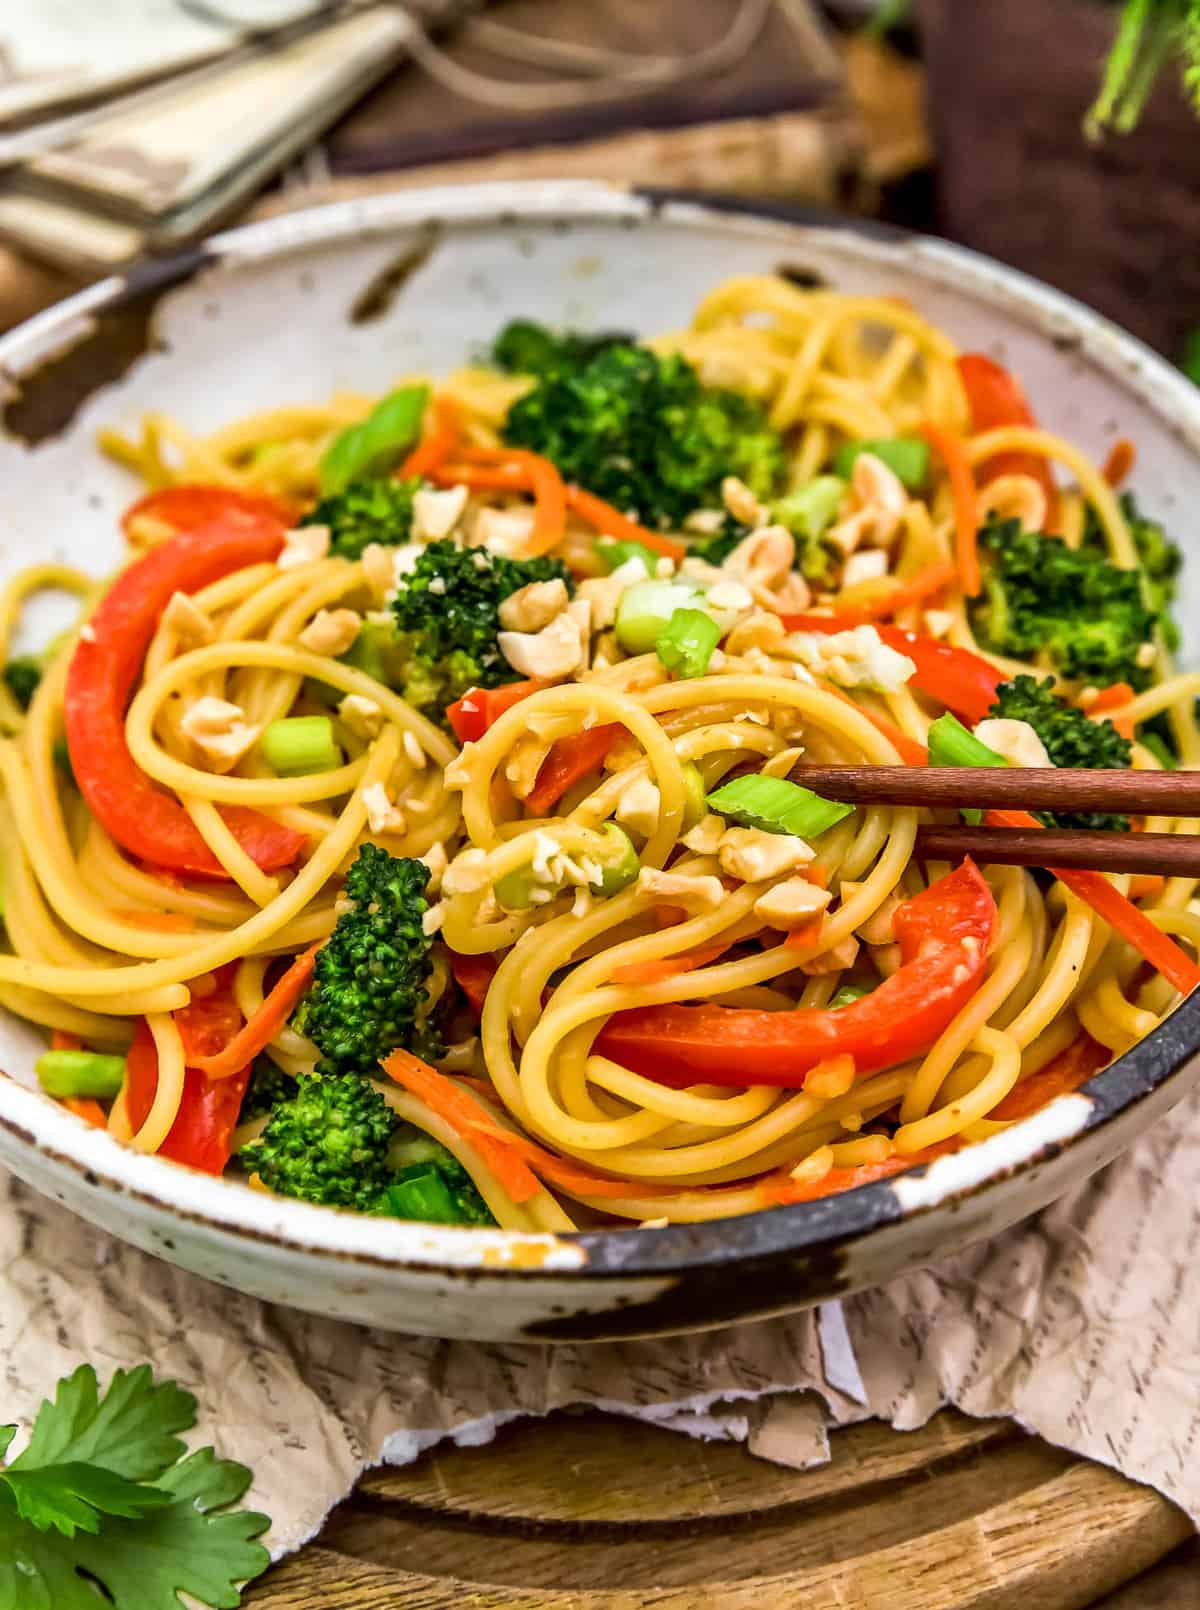 Eating Spicy Peanut Noodles